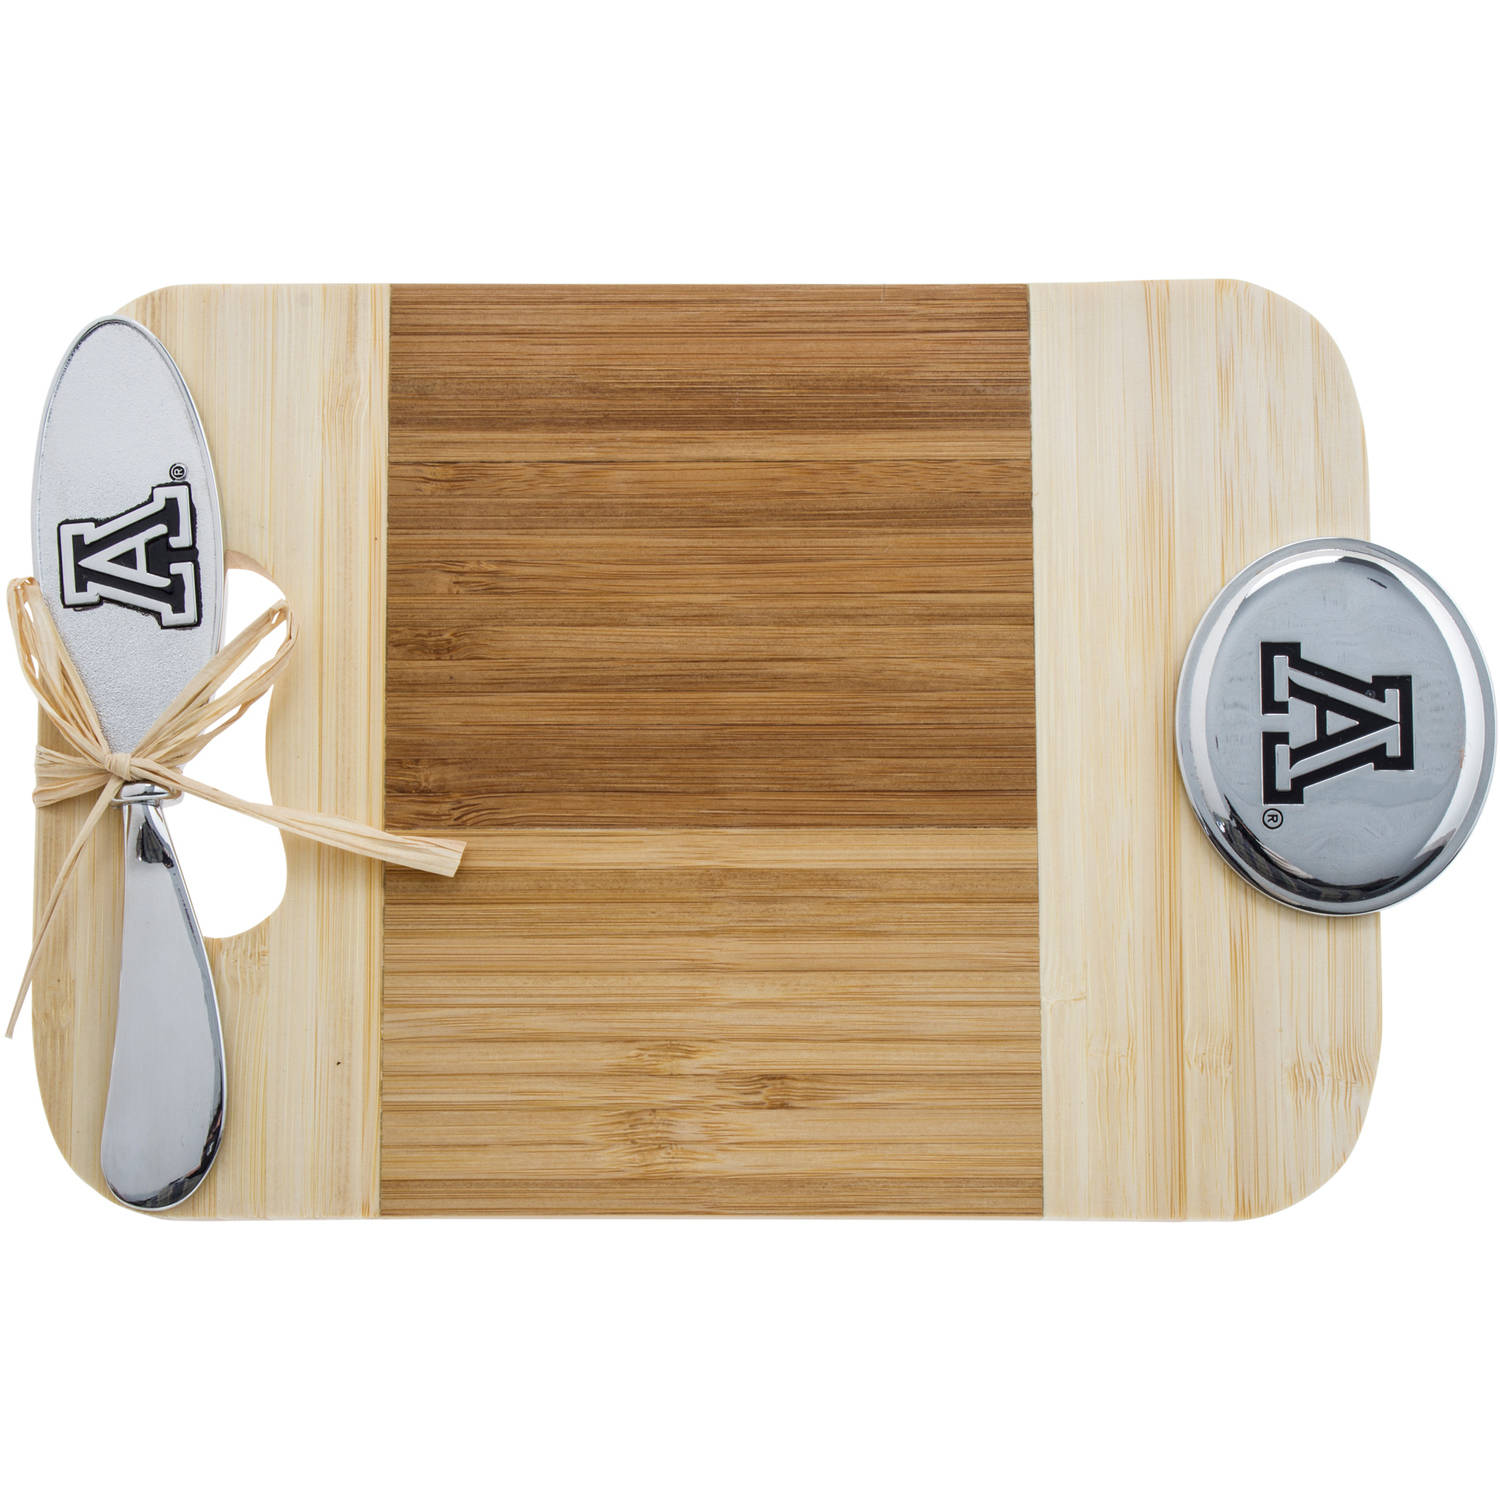 Bamboo Serving Board with Spreader Included, University of Arizona